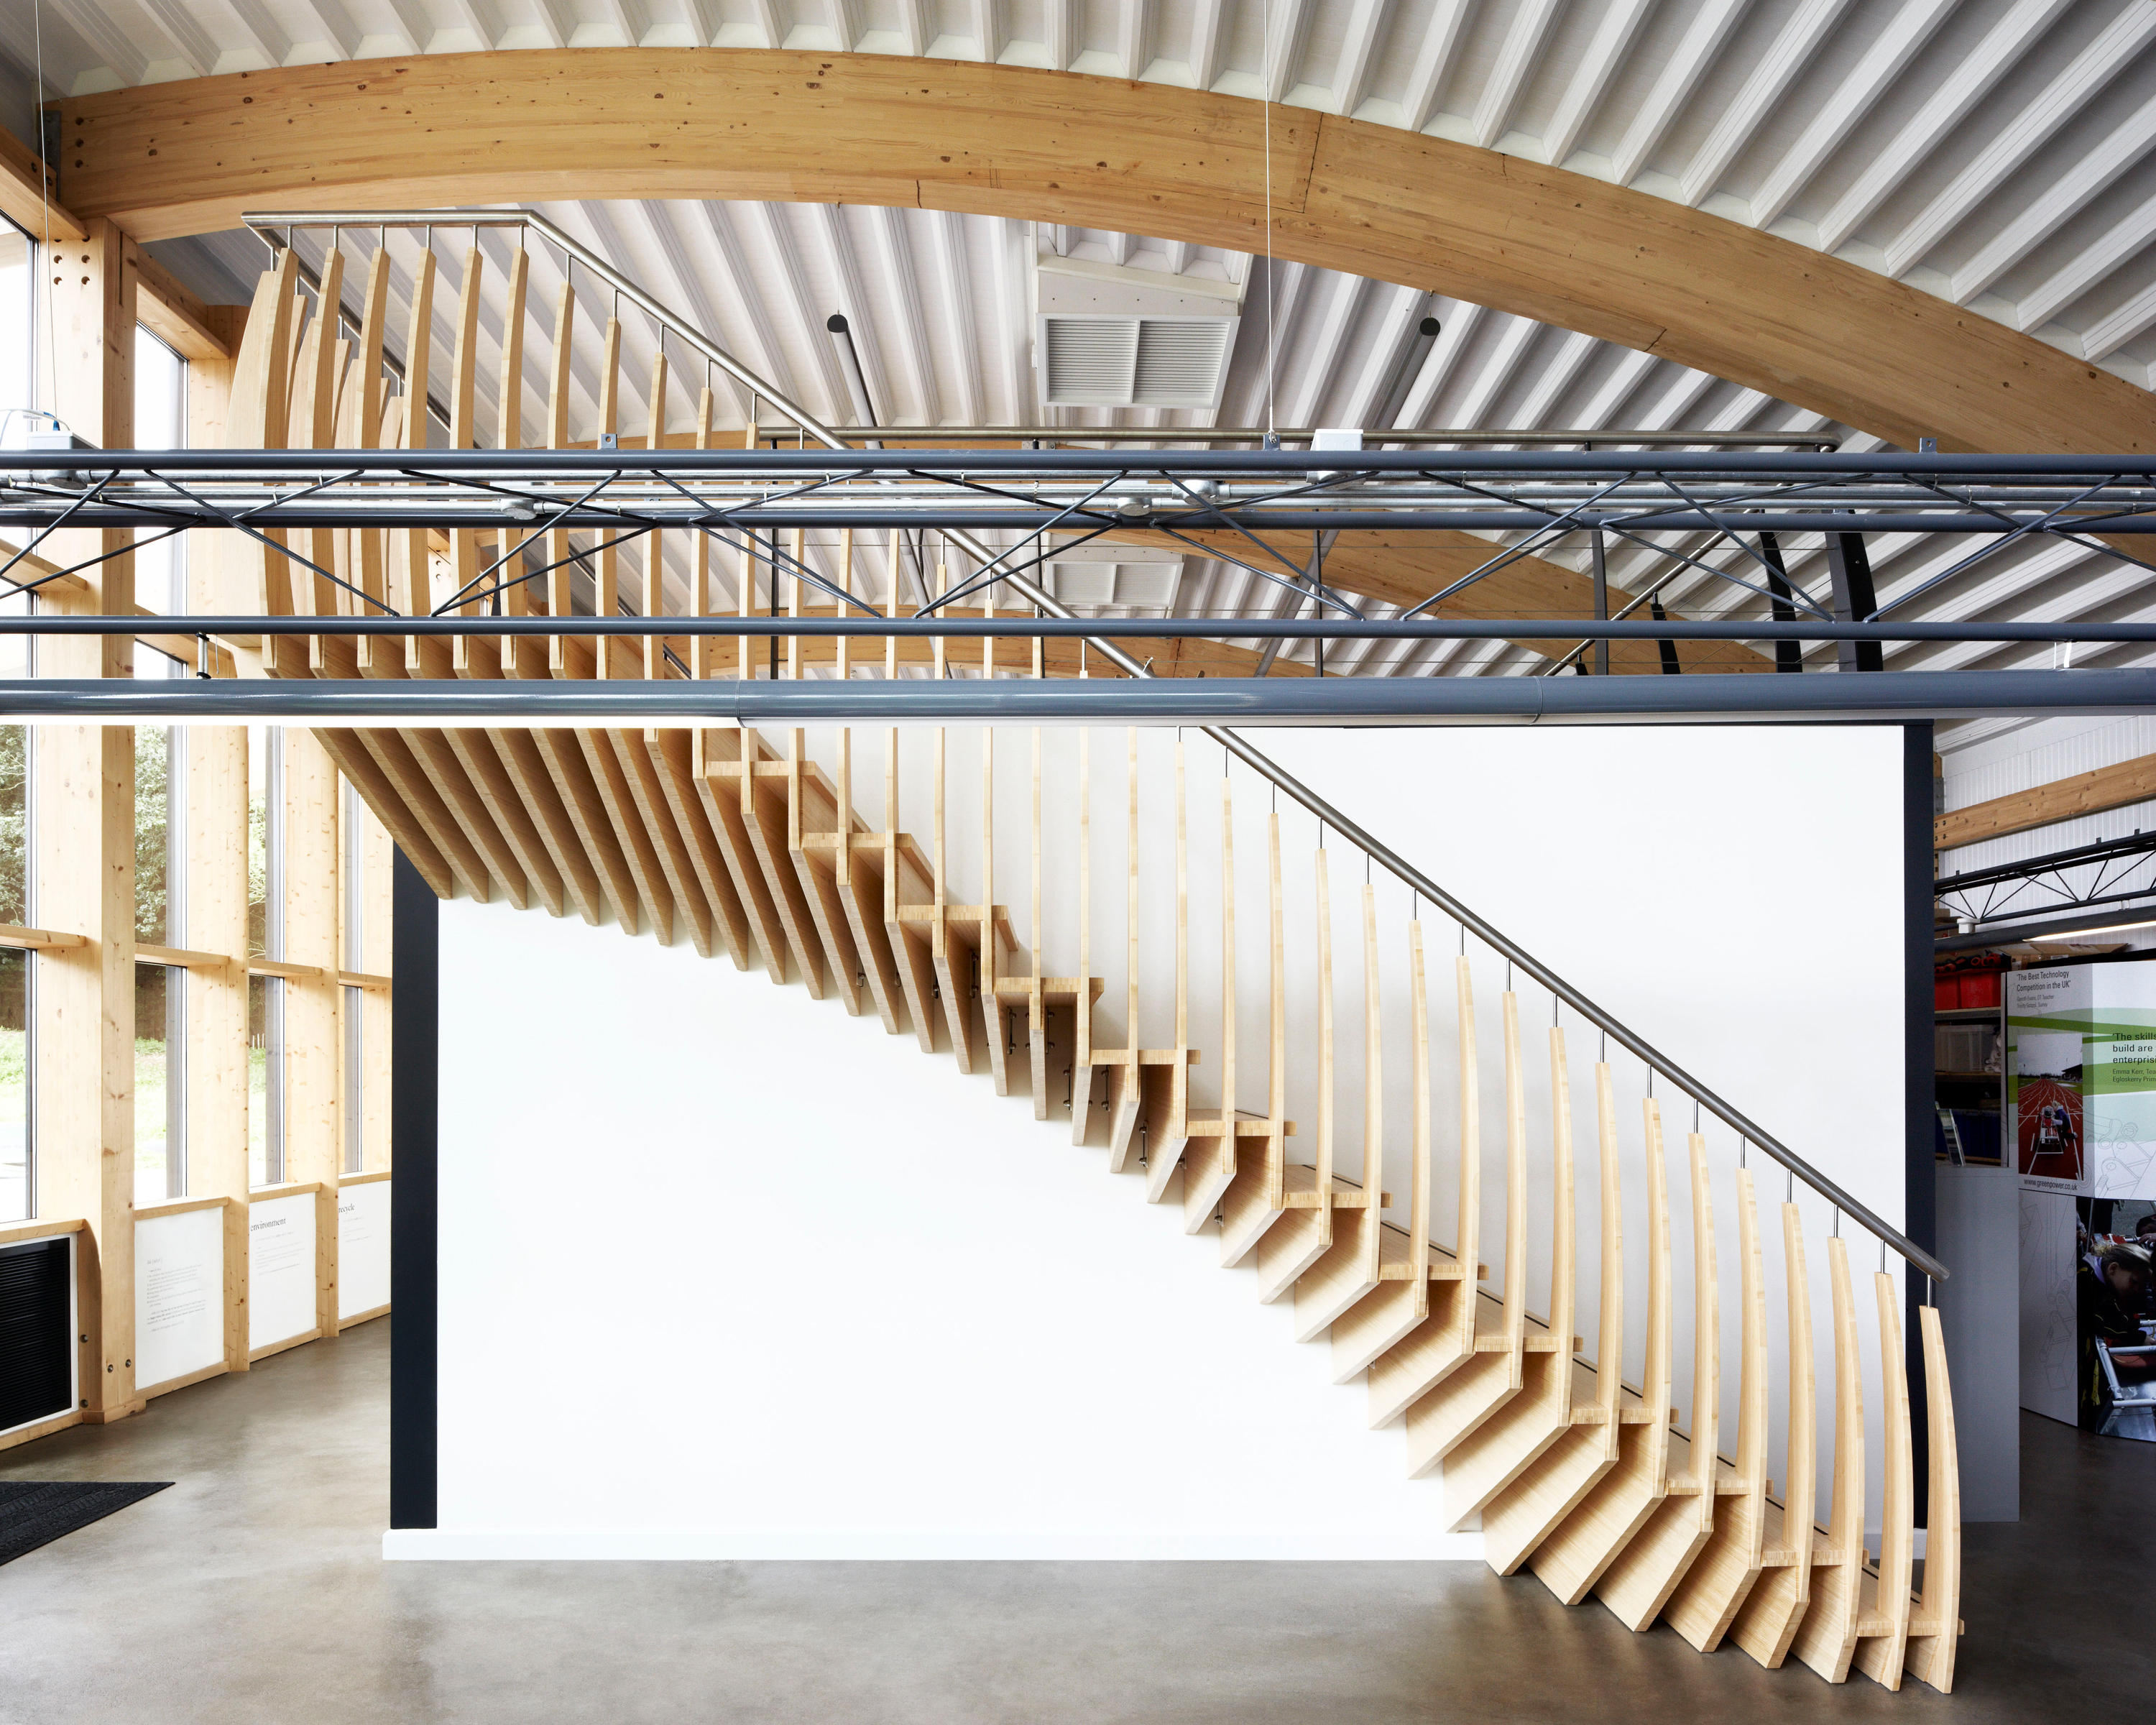 MindStep | Straight Stairs Wood TRH 517 By EeStairs | Wood Stairs ...